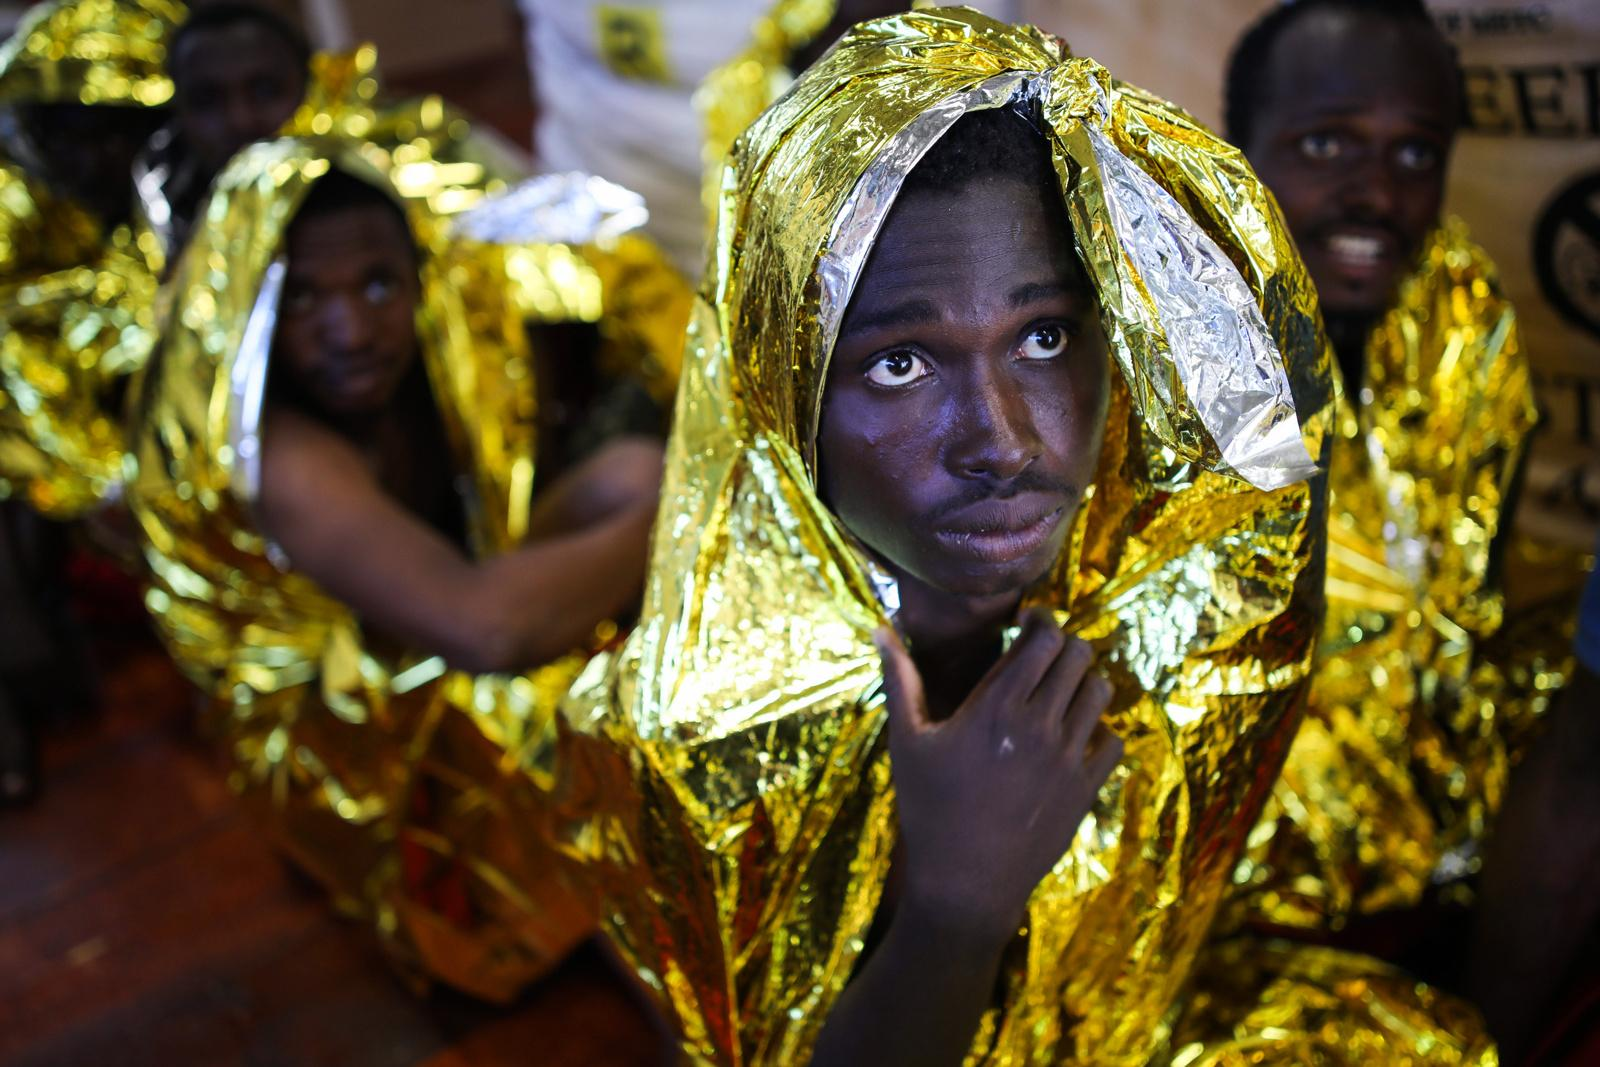 Nigerian Refugees wrap themselves in survival foil to keep warm on deck of the rescue vessel 'VOS Hestia', shortly after they have been rescued from a dinghy on the Mediterranean sea off the Libyan coast, June 03, 2017. The sea journey took the lives of four migrants. The Central Mediterranean route is the world's deadliest migration route. Of the estimated 3,080 people that have died or gone missing while trying to reach Europe by sea via the three Mediterranean routes until end of November 2017, over 94% of deaths have occurred from North Africa to Italy, according to UNHCR. Over 117,000 refugees and migrants arrived in Italy by sea in 2017, about 32% less compared to 2016.